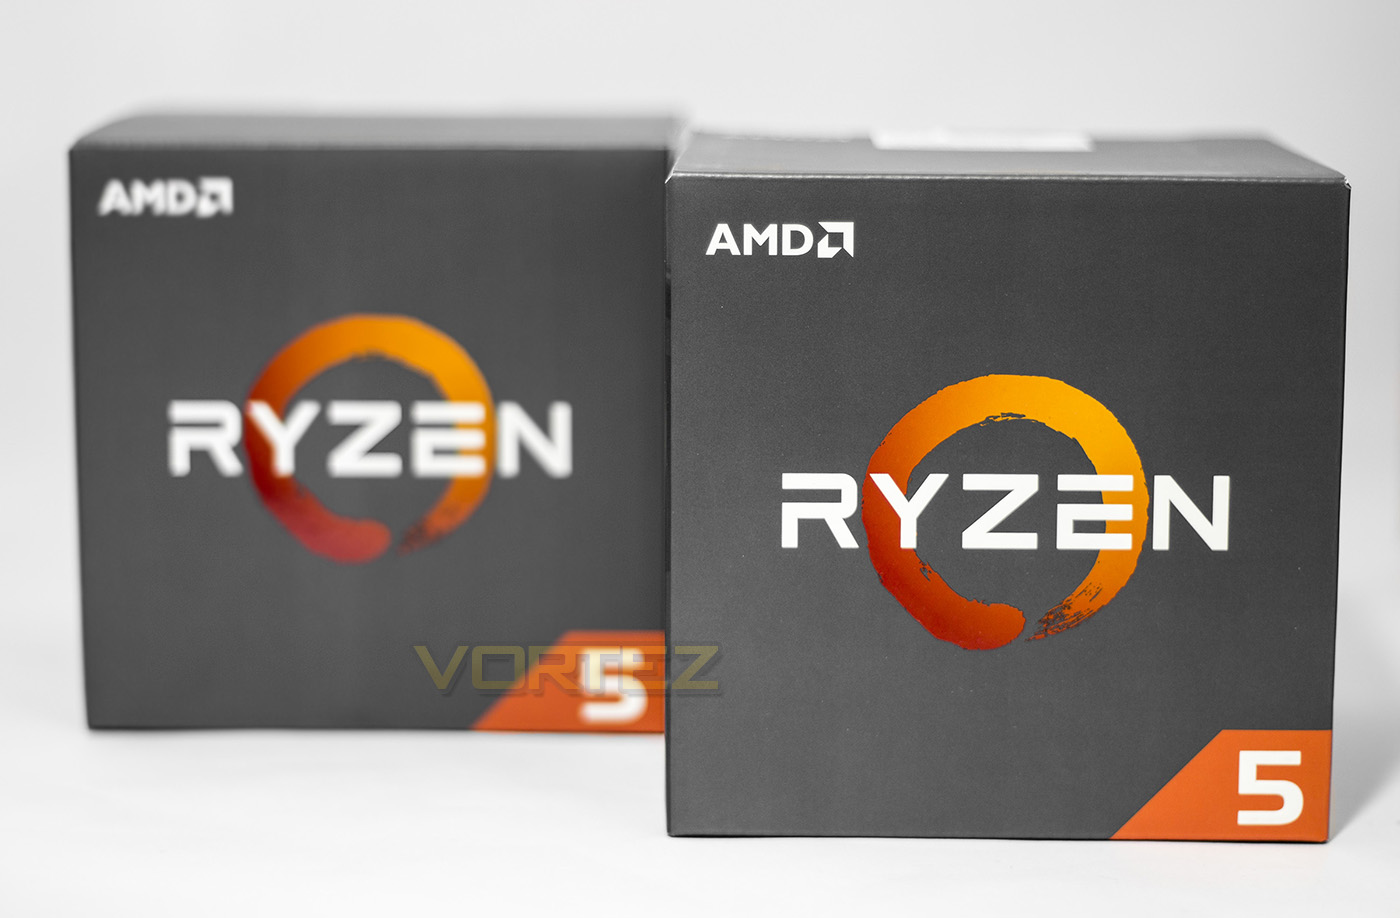 Amd Ryzen 5 1400 1600 Review Introduction